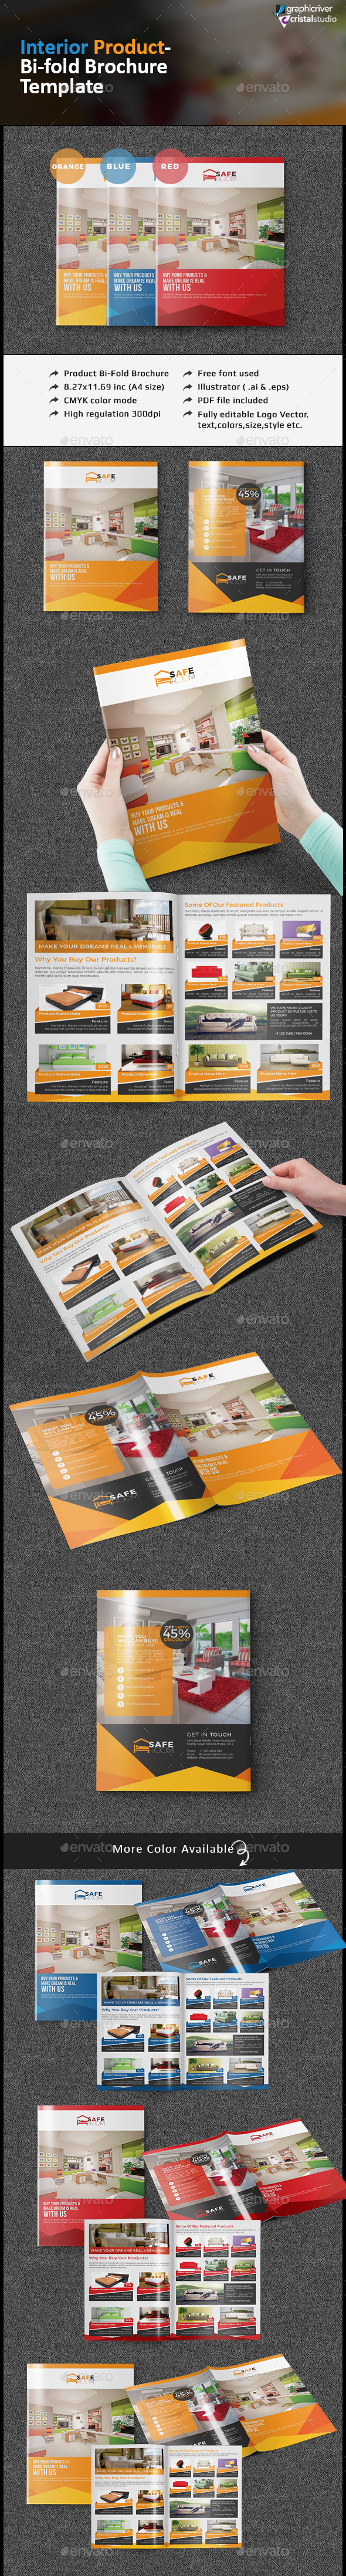 Interior Product Brochure - Corporate Brochures